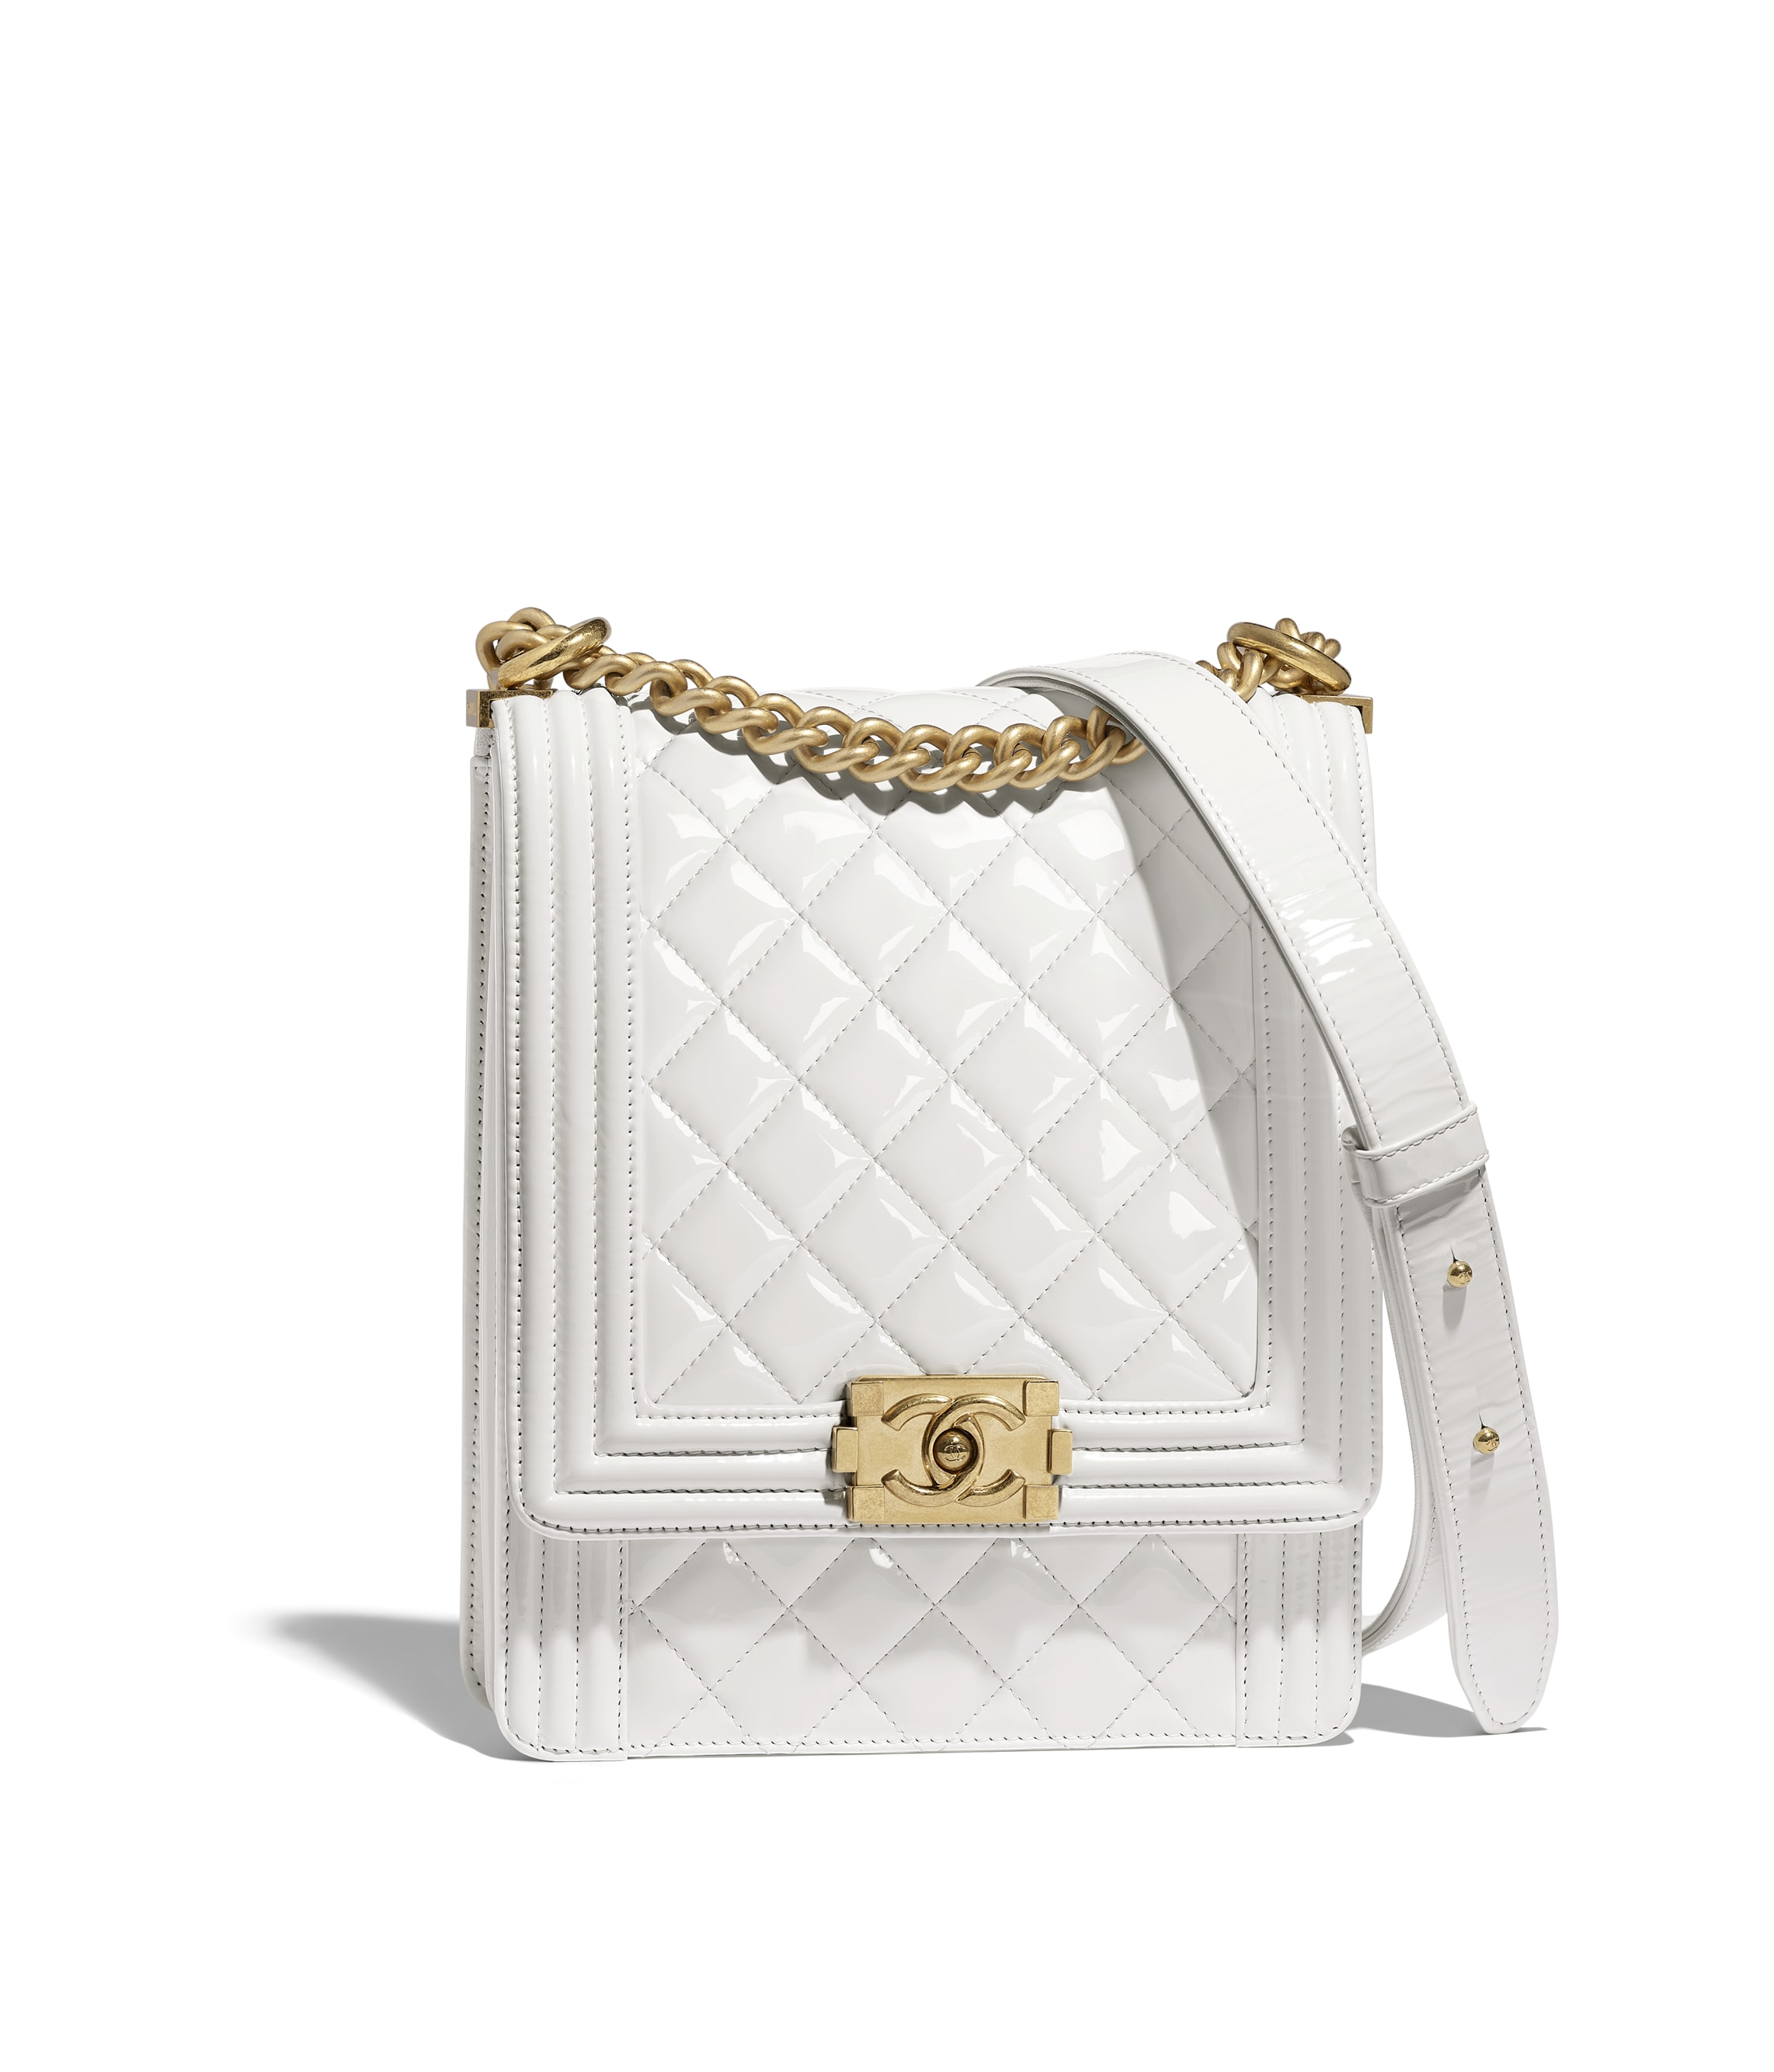 9f8422125cce Chanel White Boy Bag Price | Stanford Center for Opportunity Policy ...